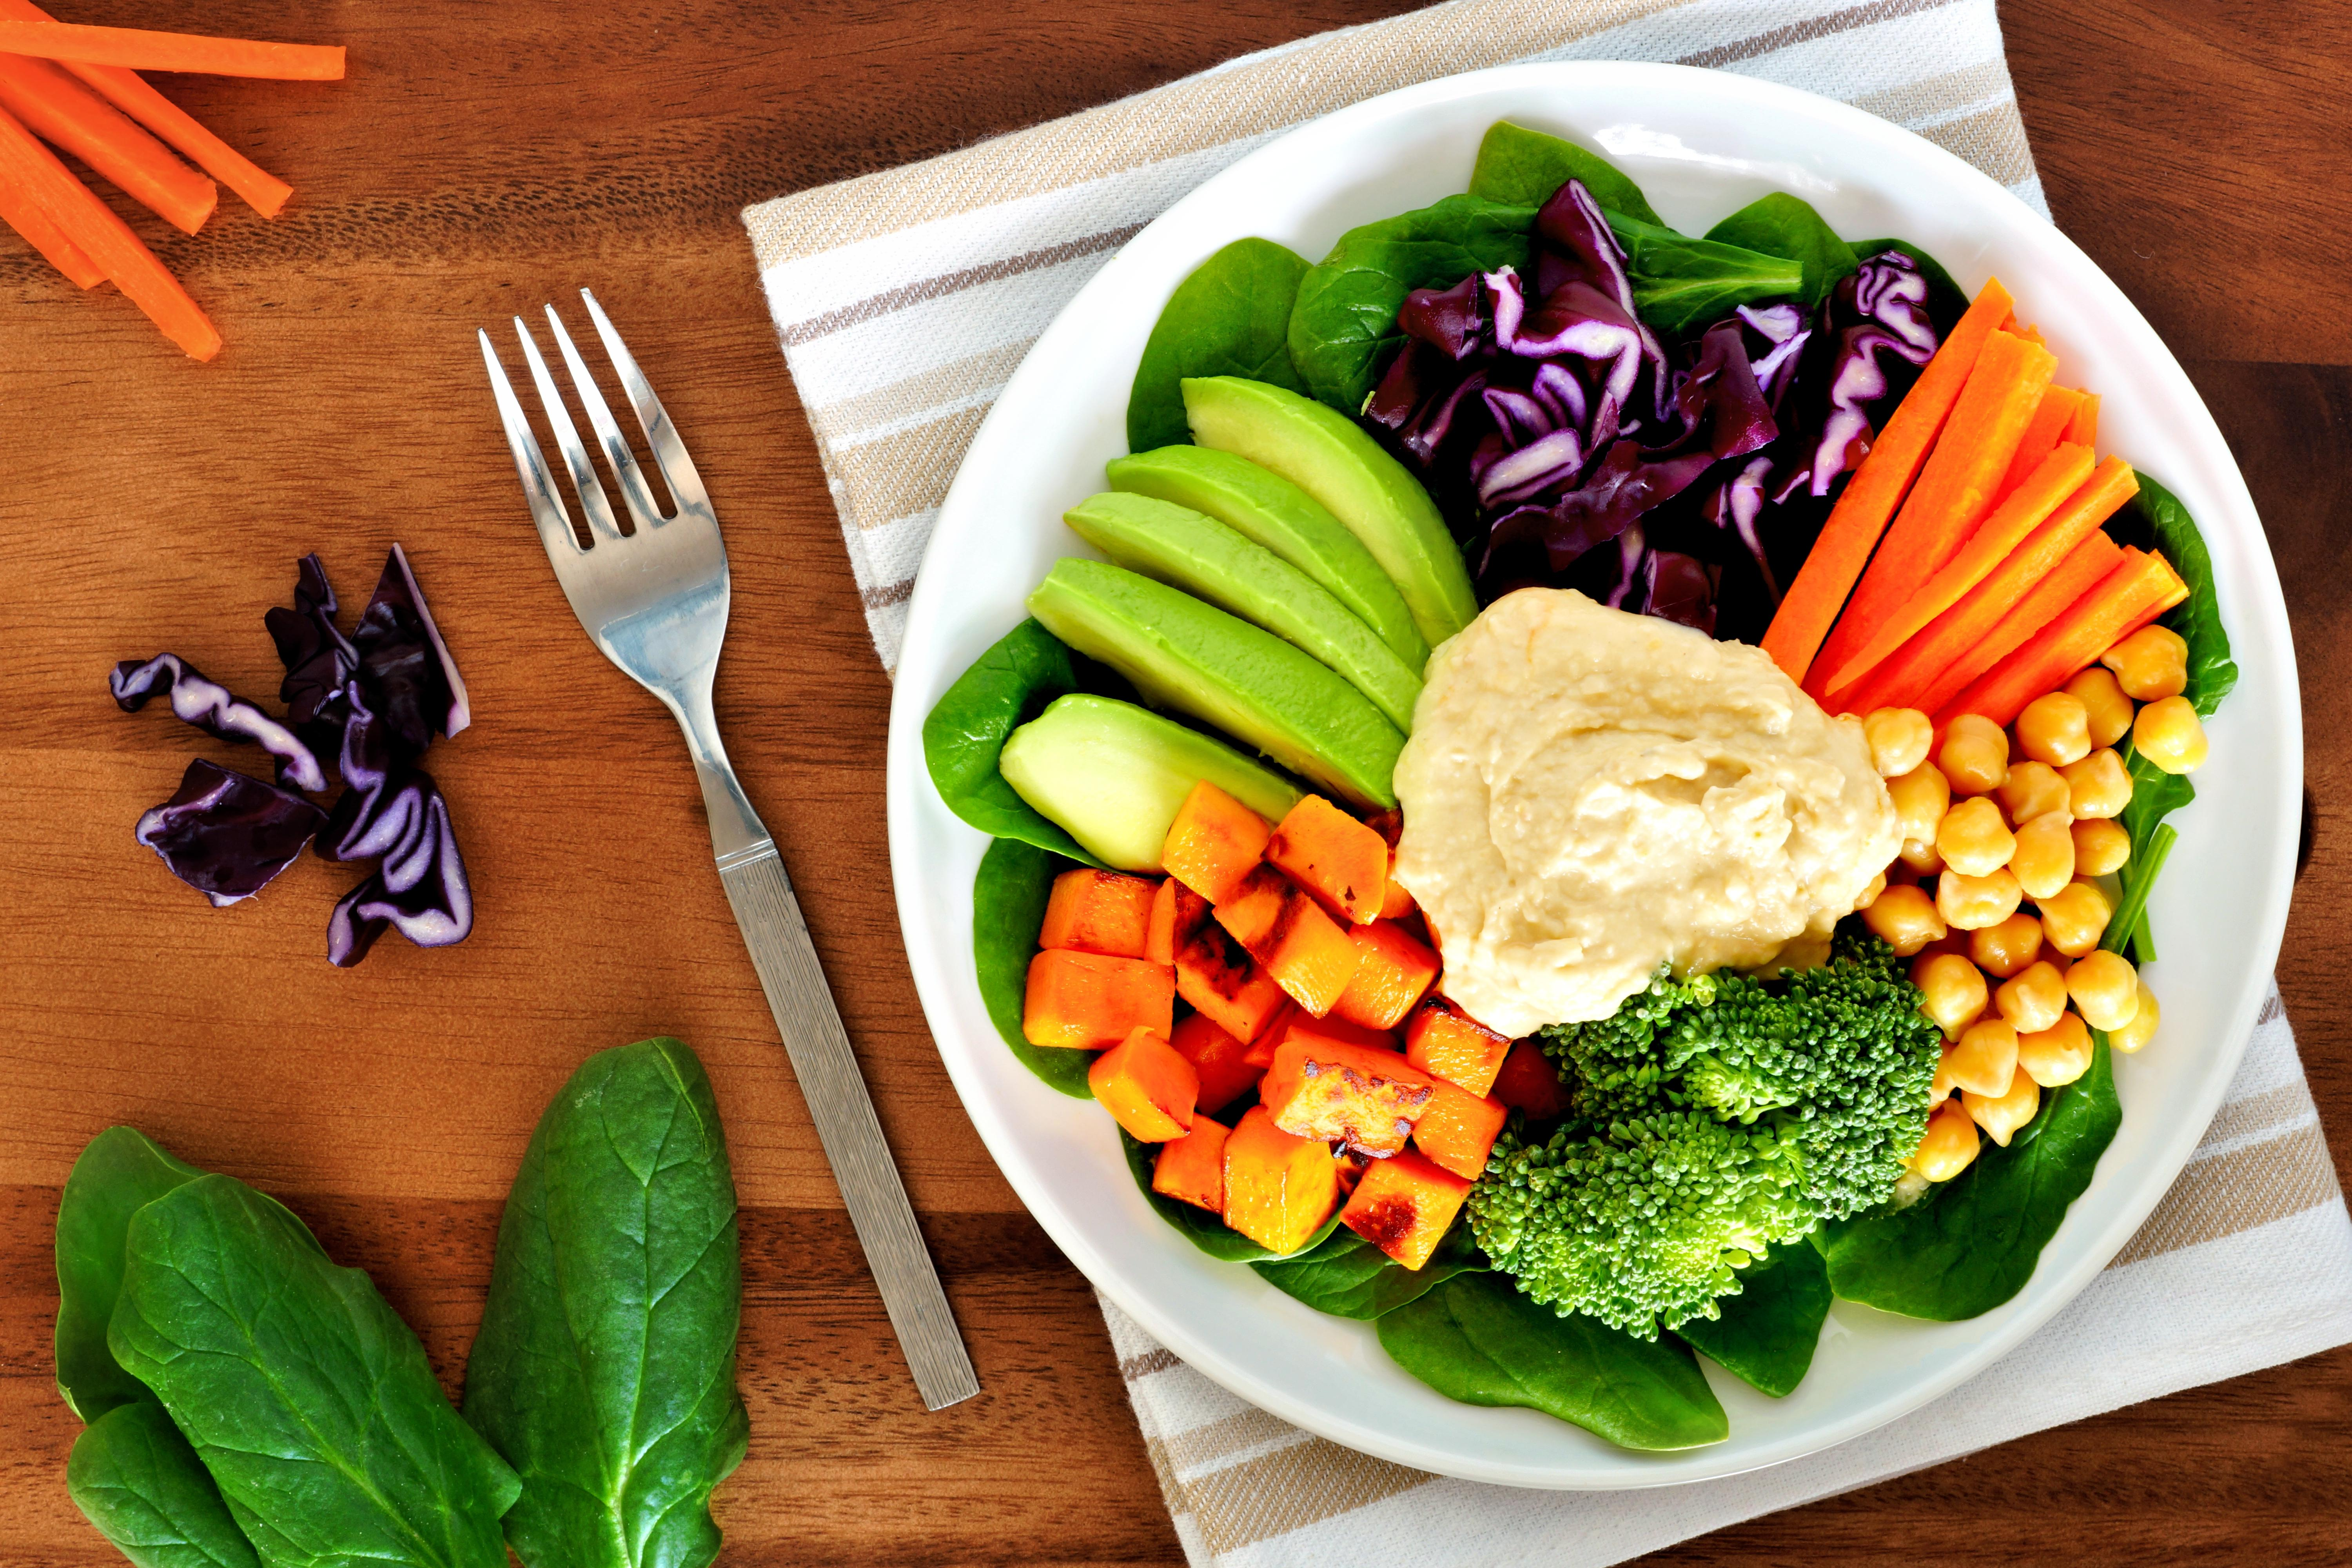 vegetables healthy lunch eat fresh table hummus eating way avocado bowl foods health overhead wooden scene researchers kidney right clever